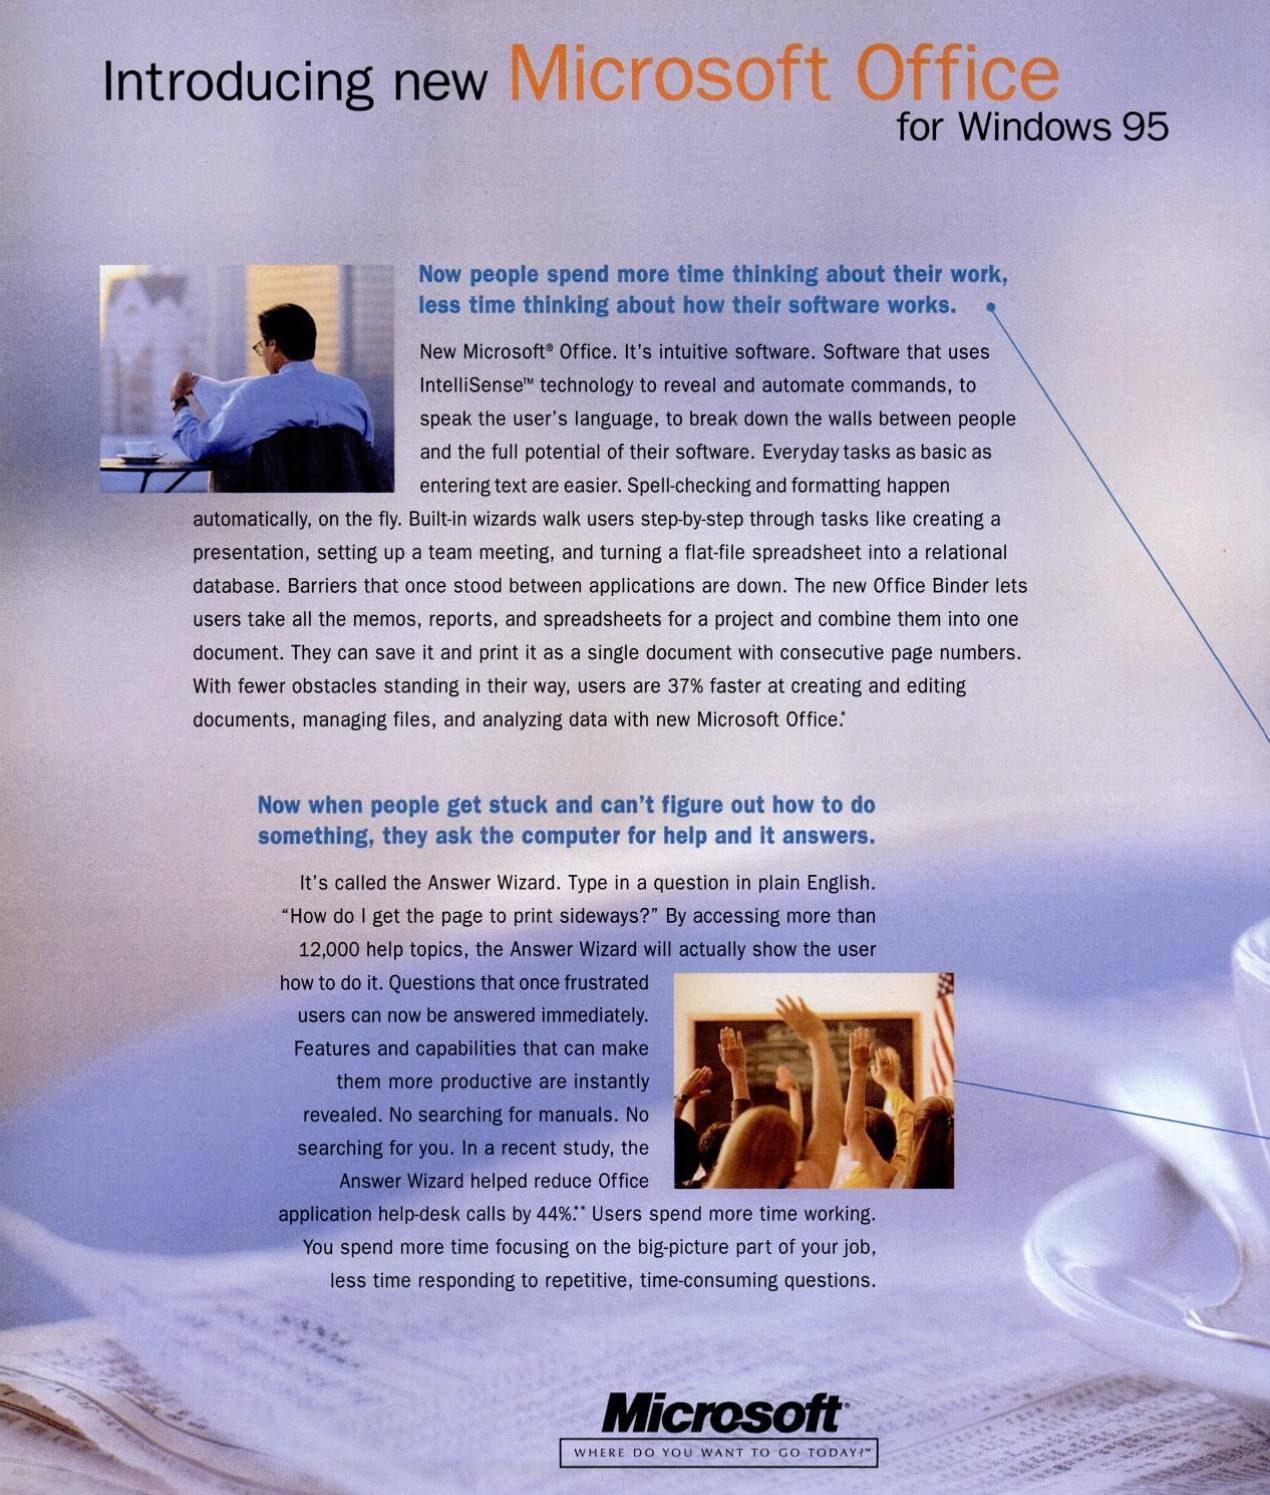 Introducing new Microsoft Office for Windows 95